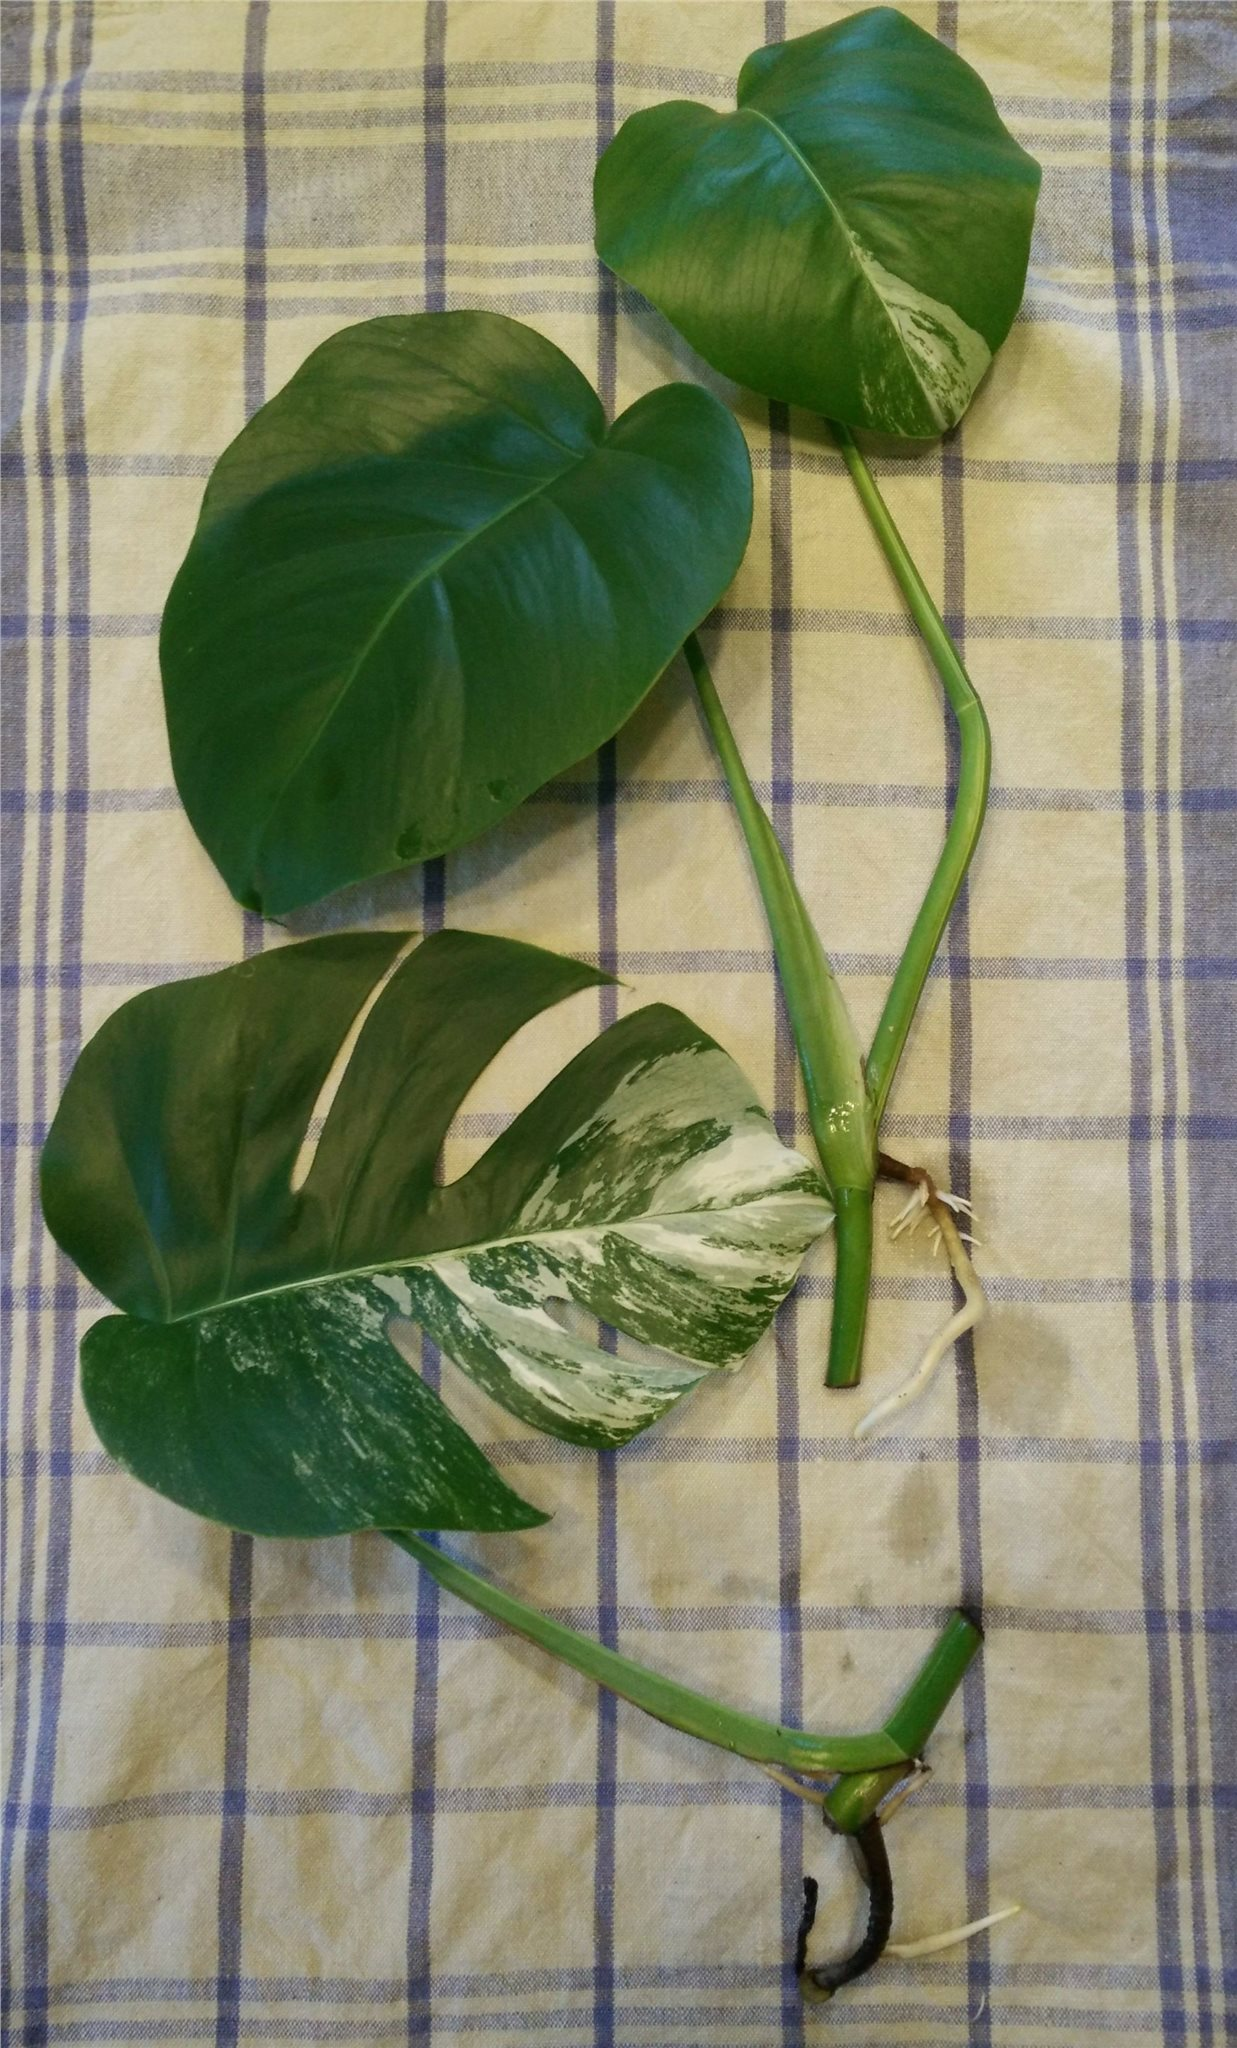 sticklingar från monstera